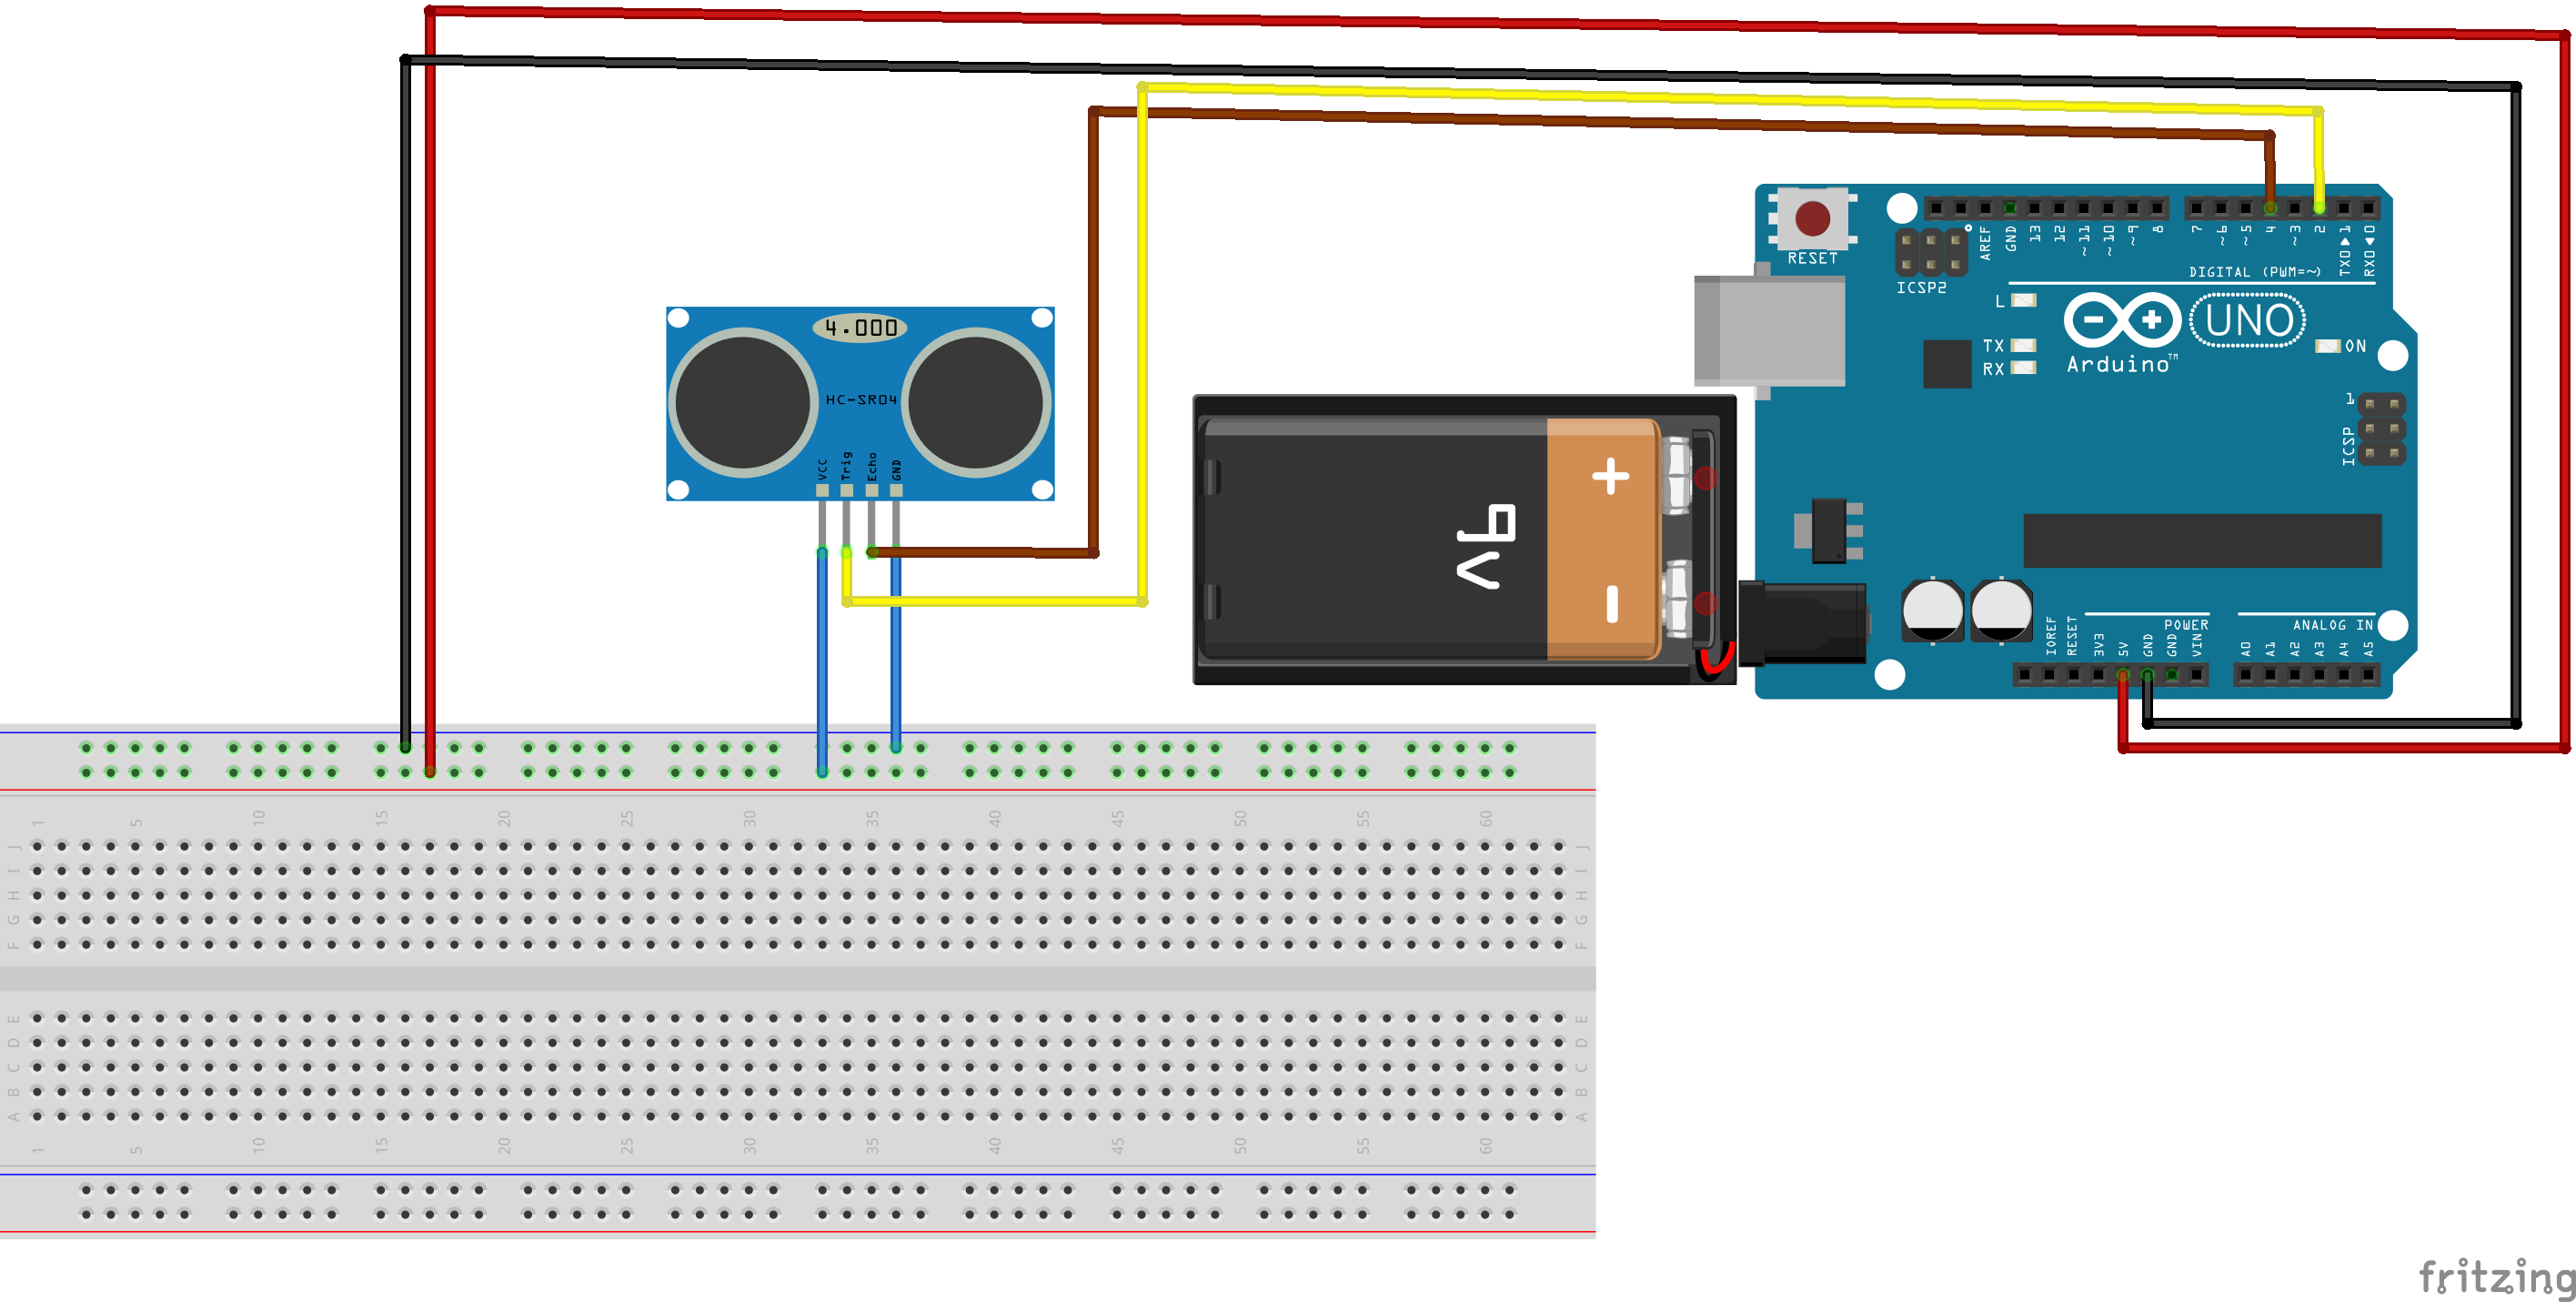 How to connect Distance Sensor to Arduino Uno?